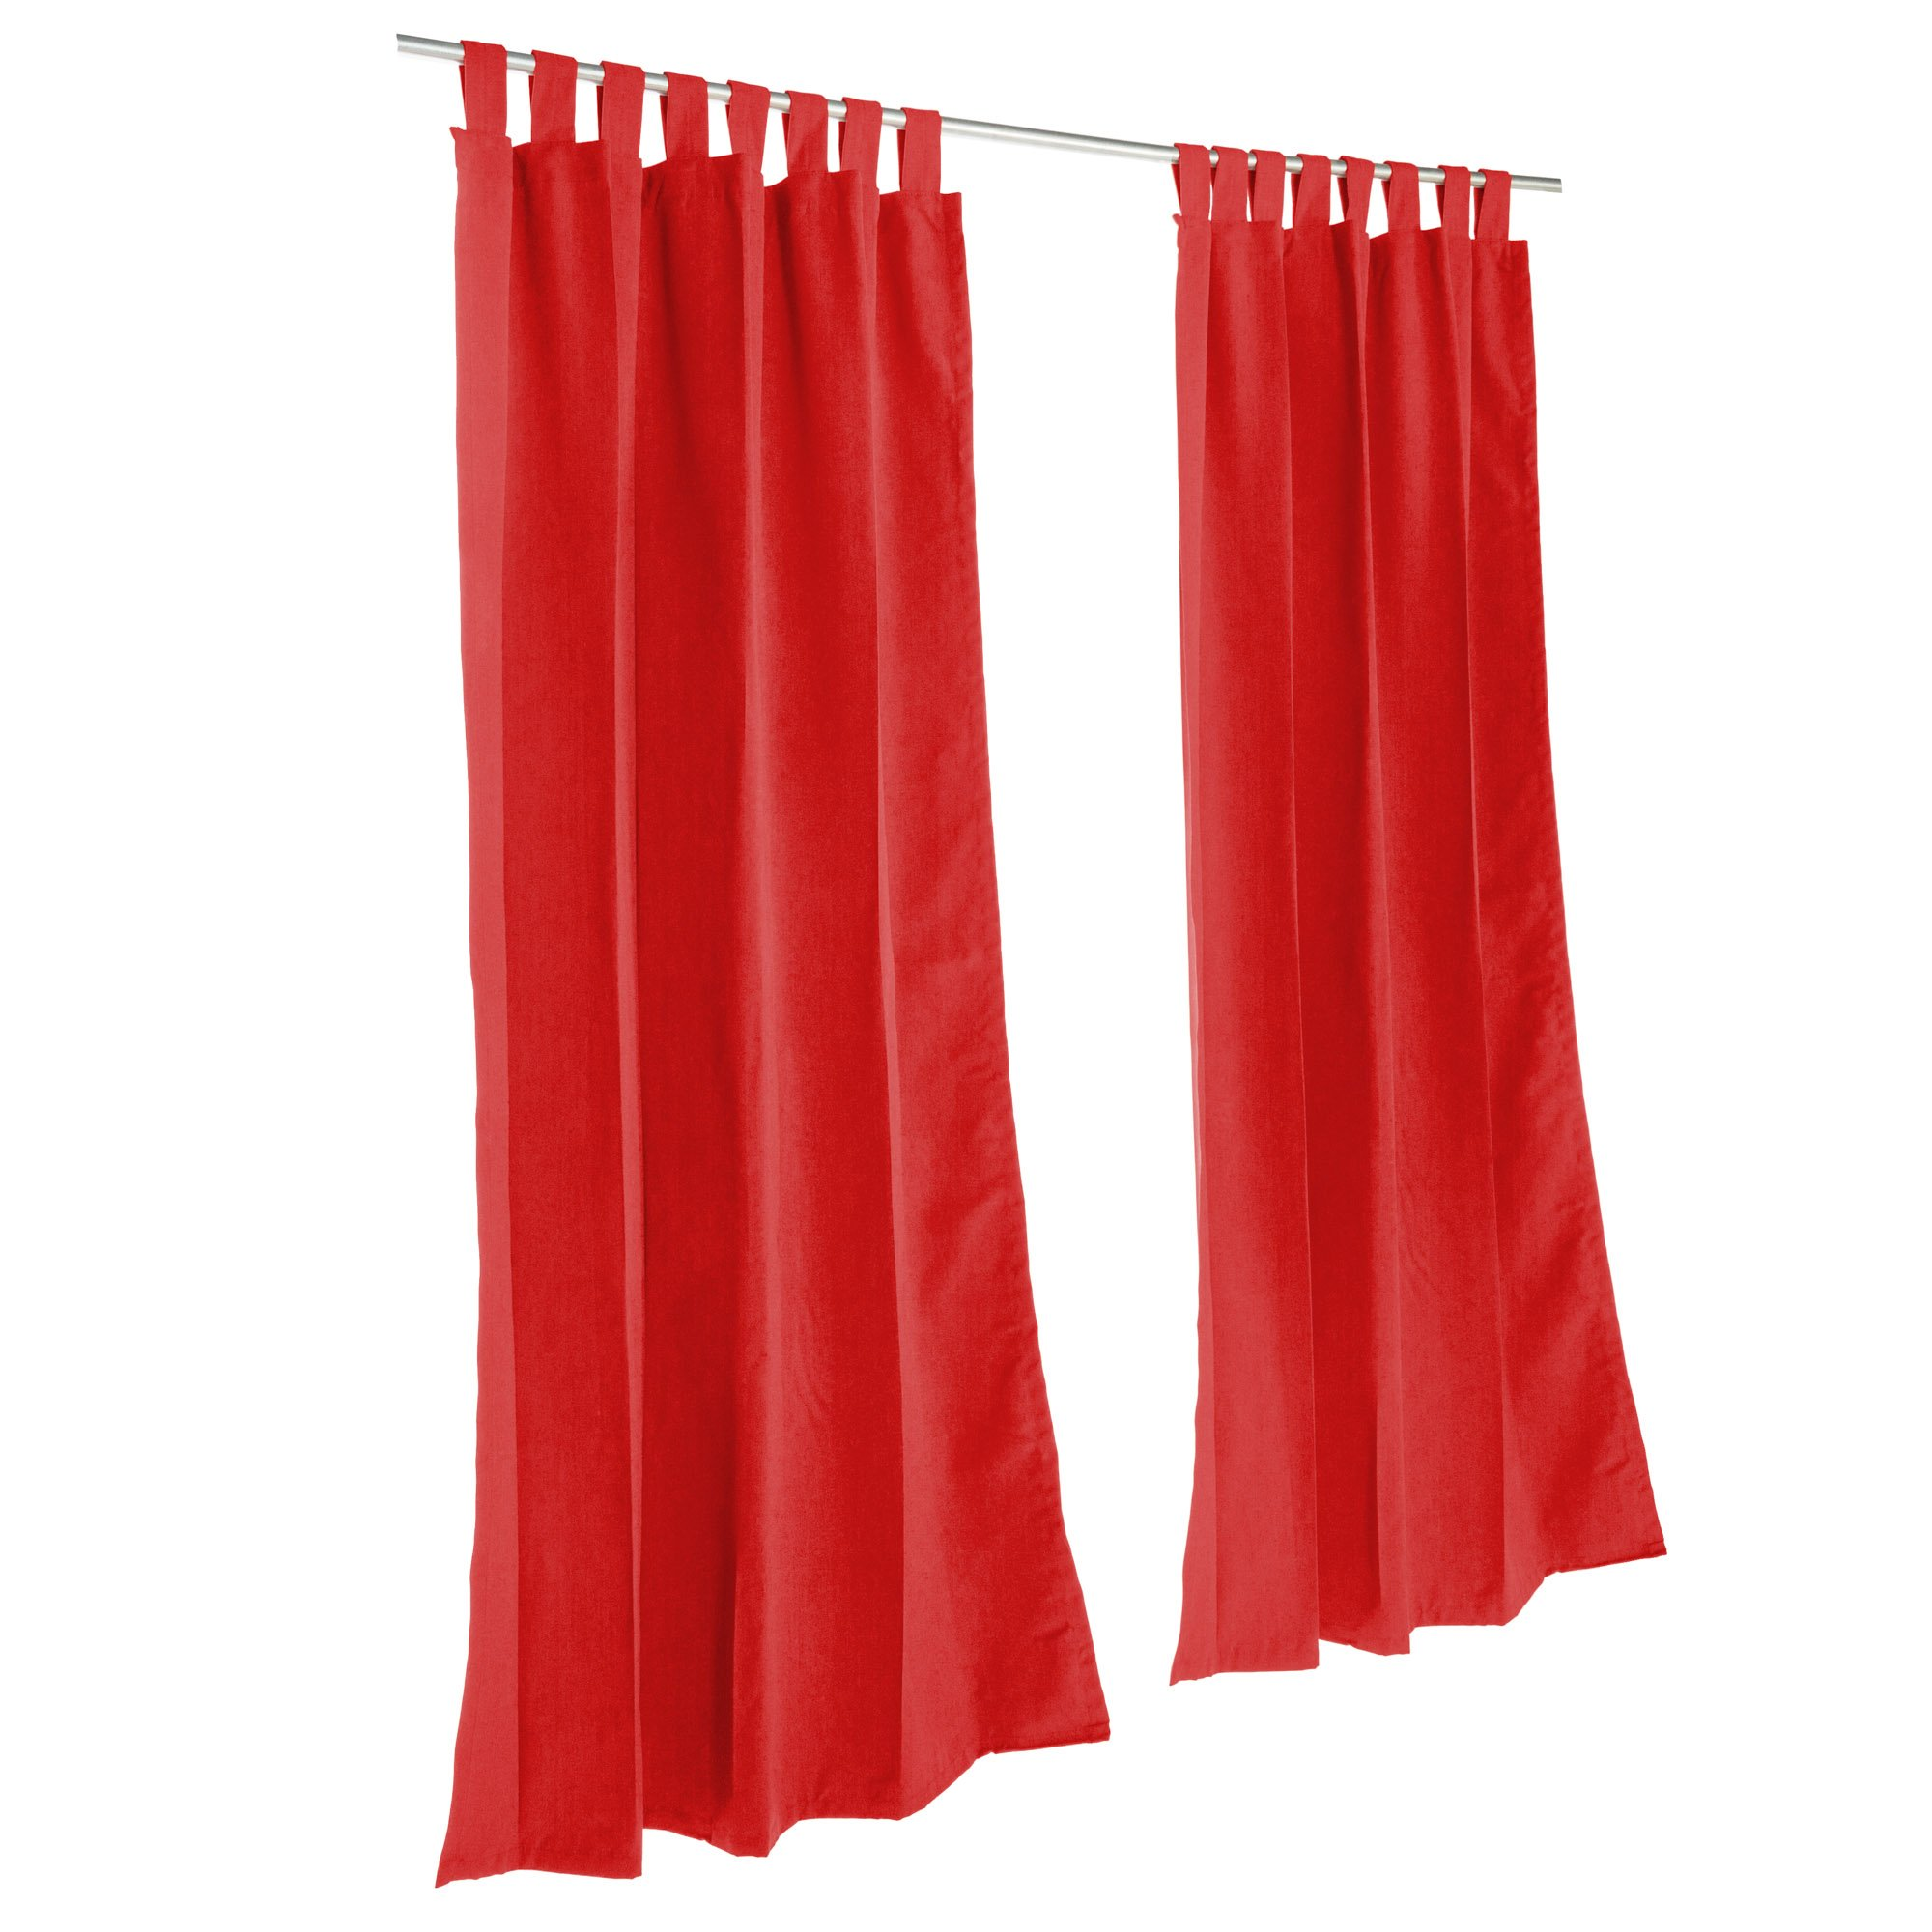 Pawleys Island Sunbrella Curtain - Canvas Jockey Red 96 Inches